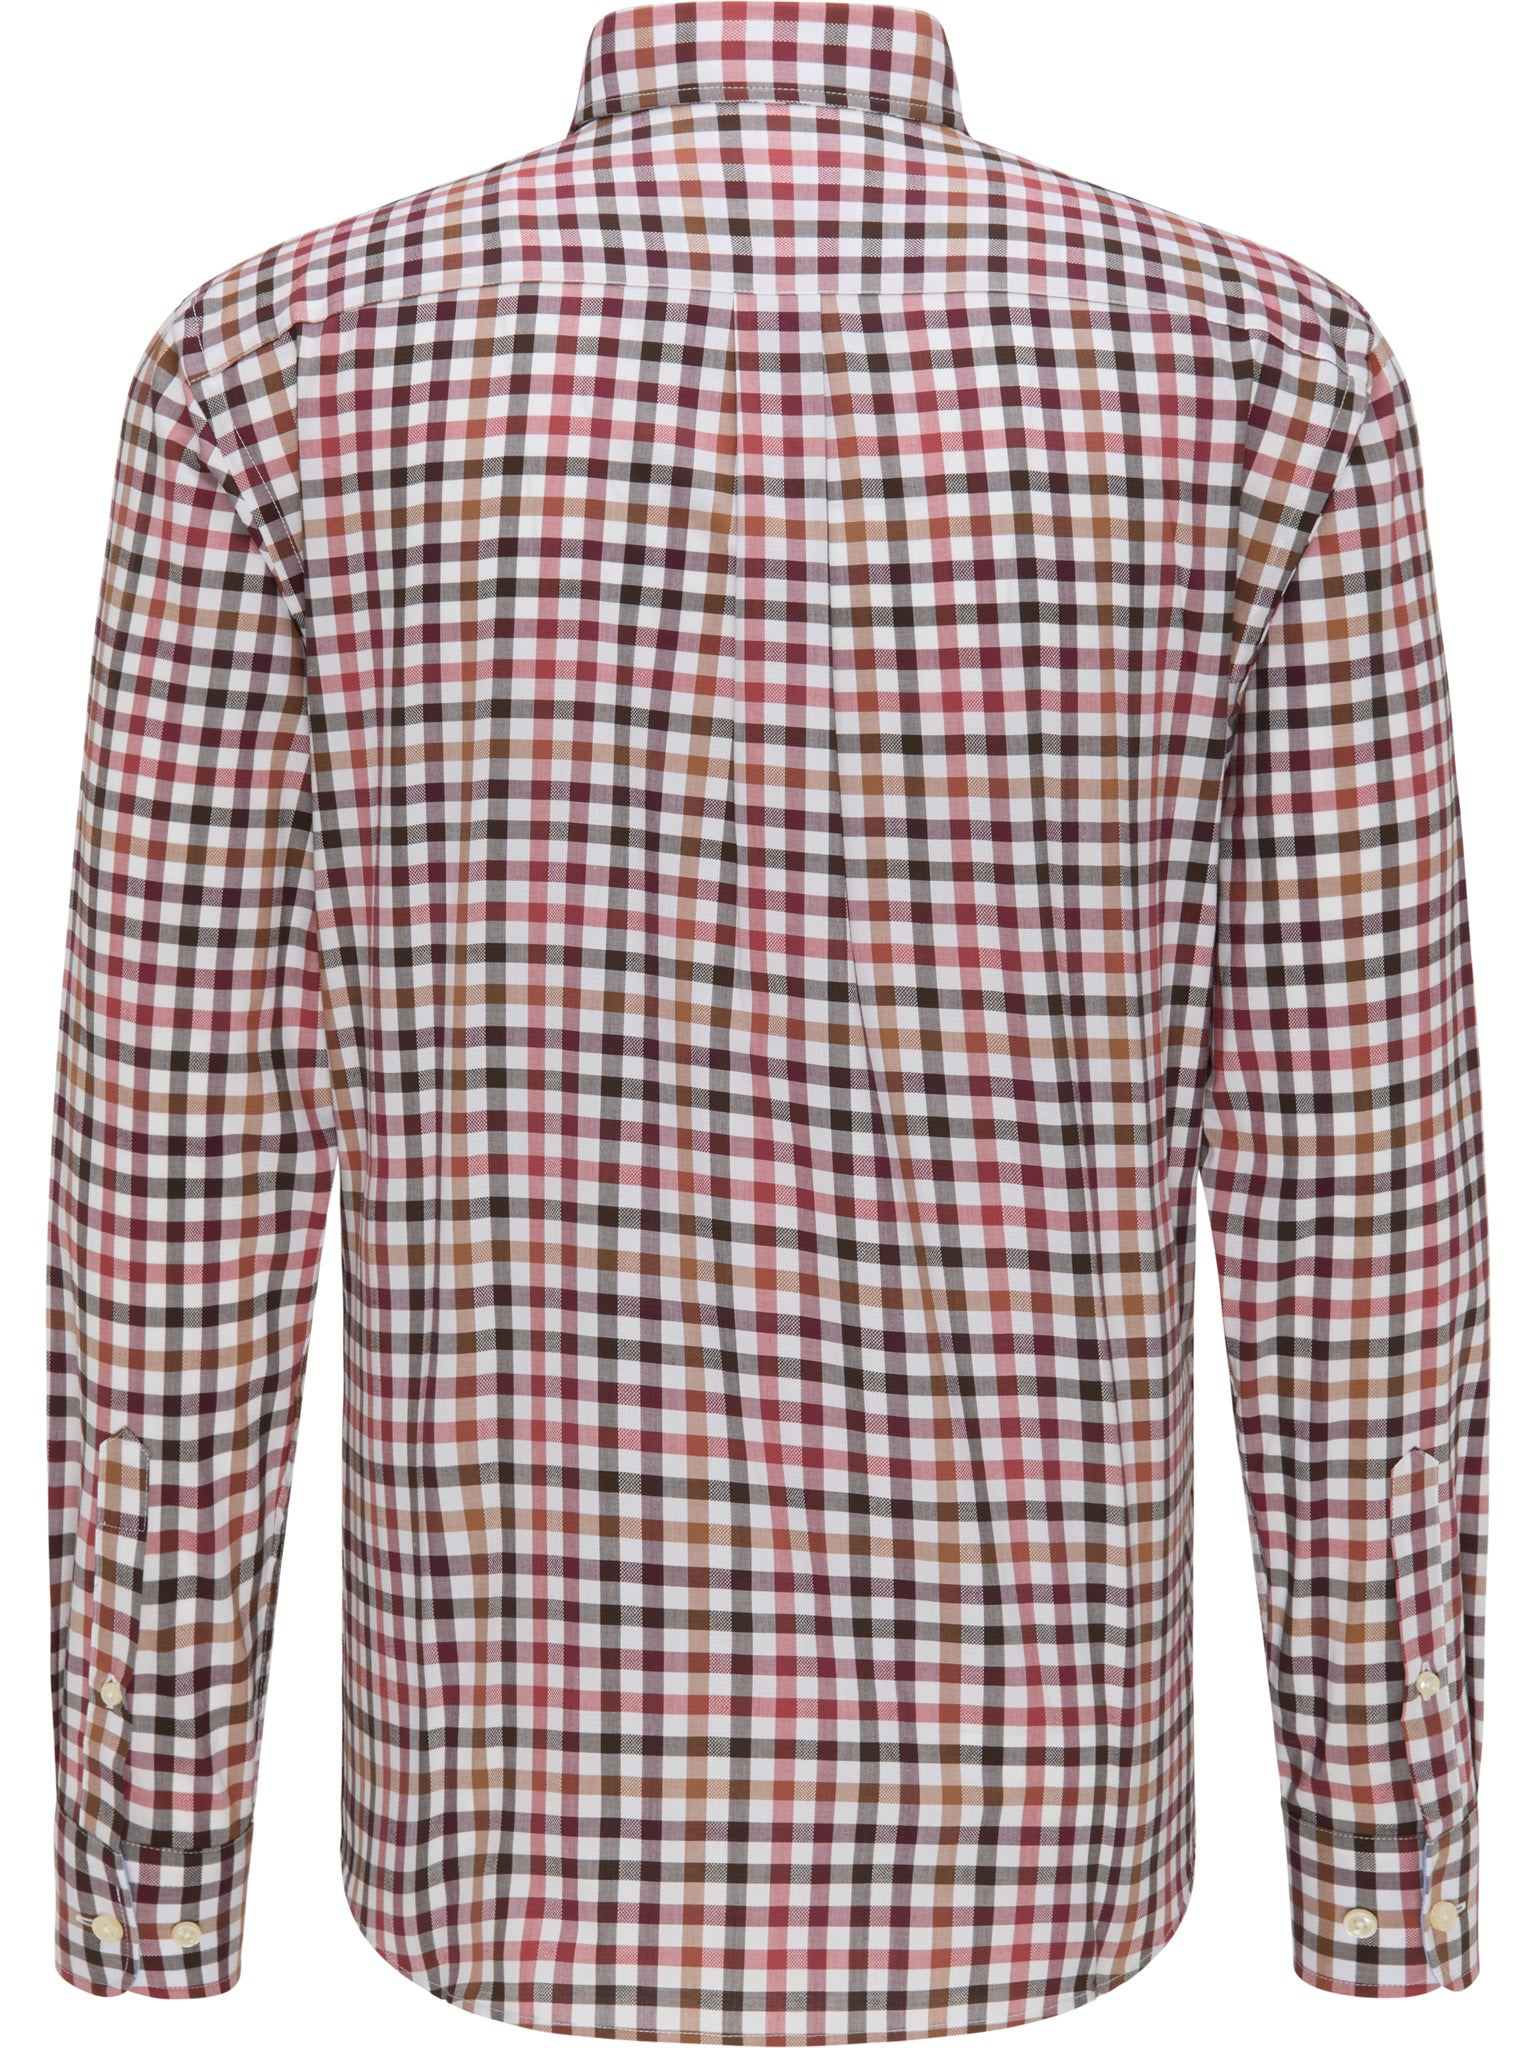 Fynch Hatton Supersoft Combi Check Shirt for Men in Terracotta - Biscotti